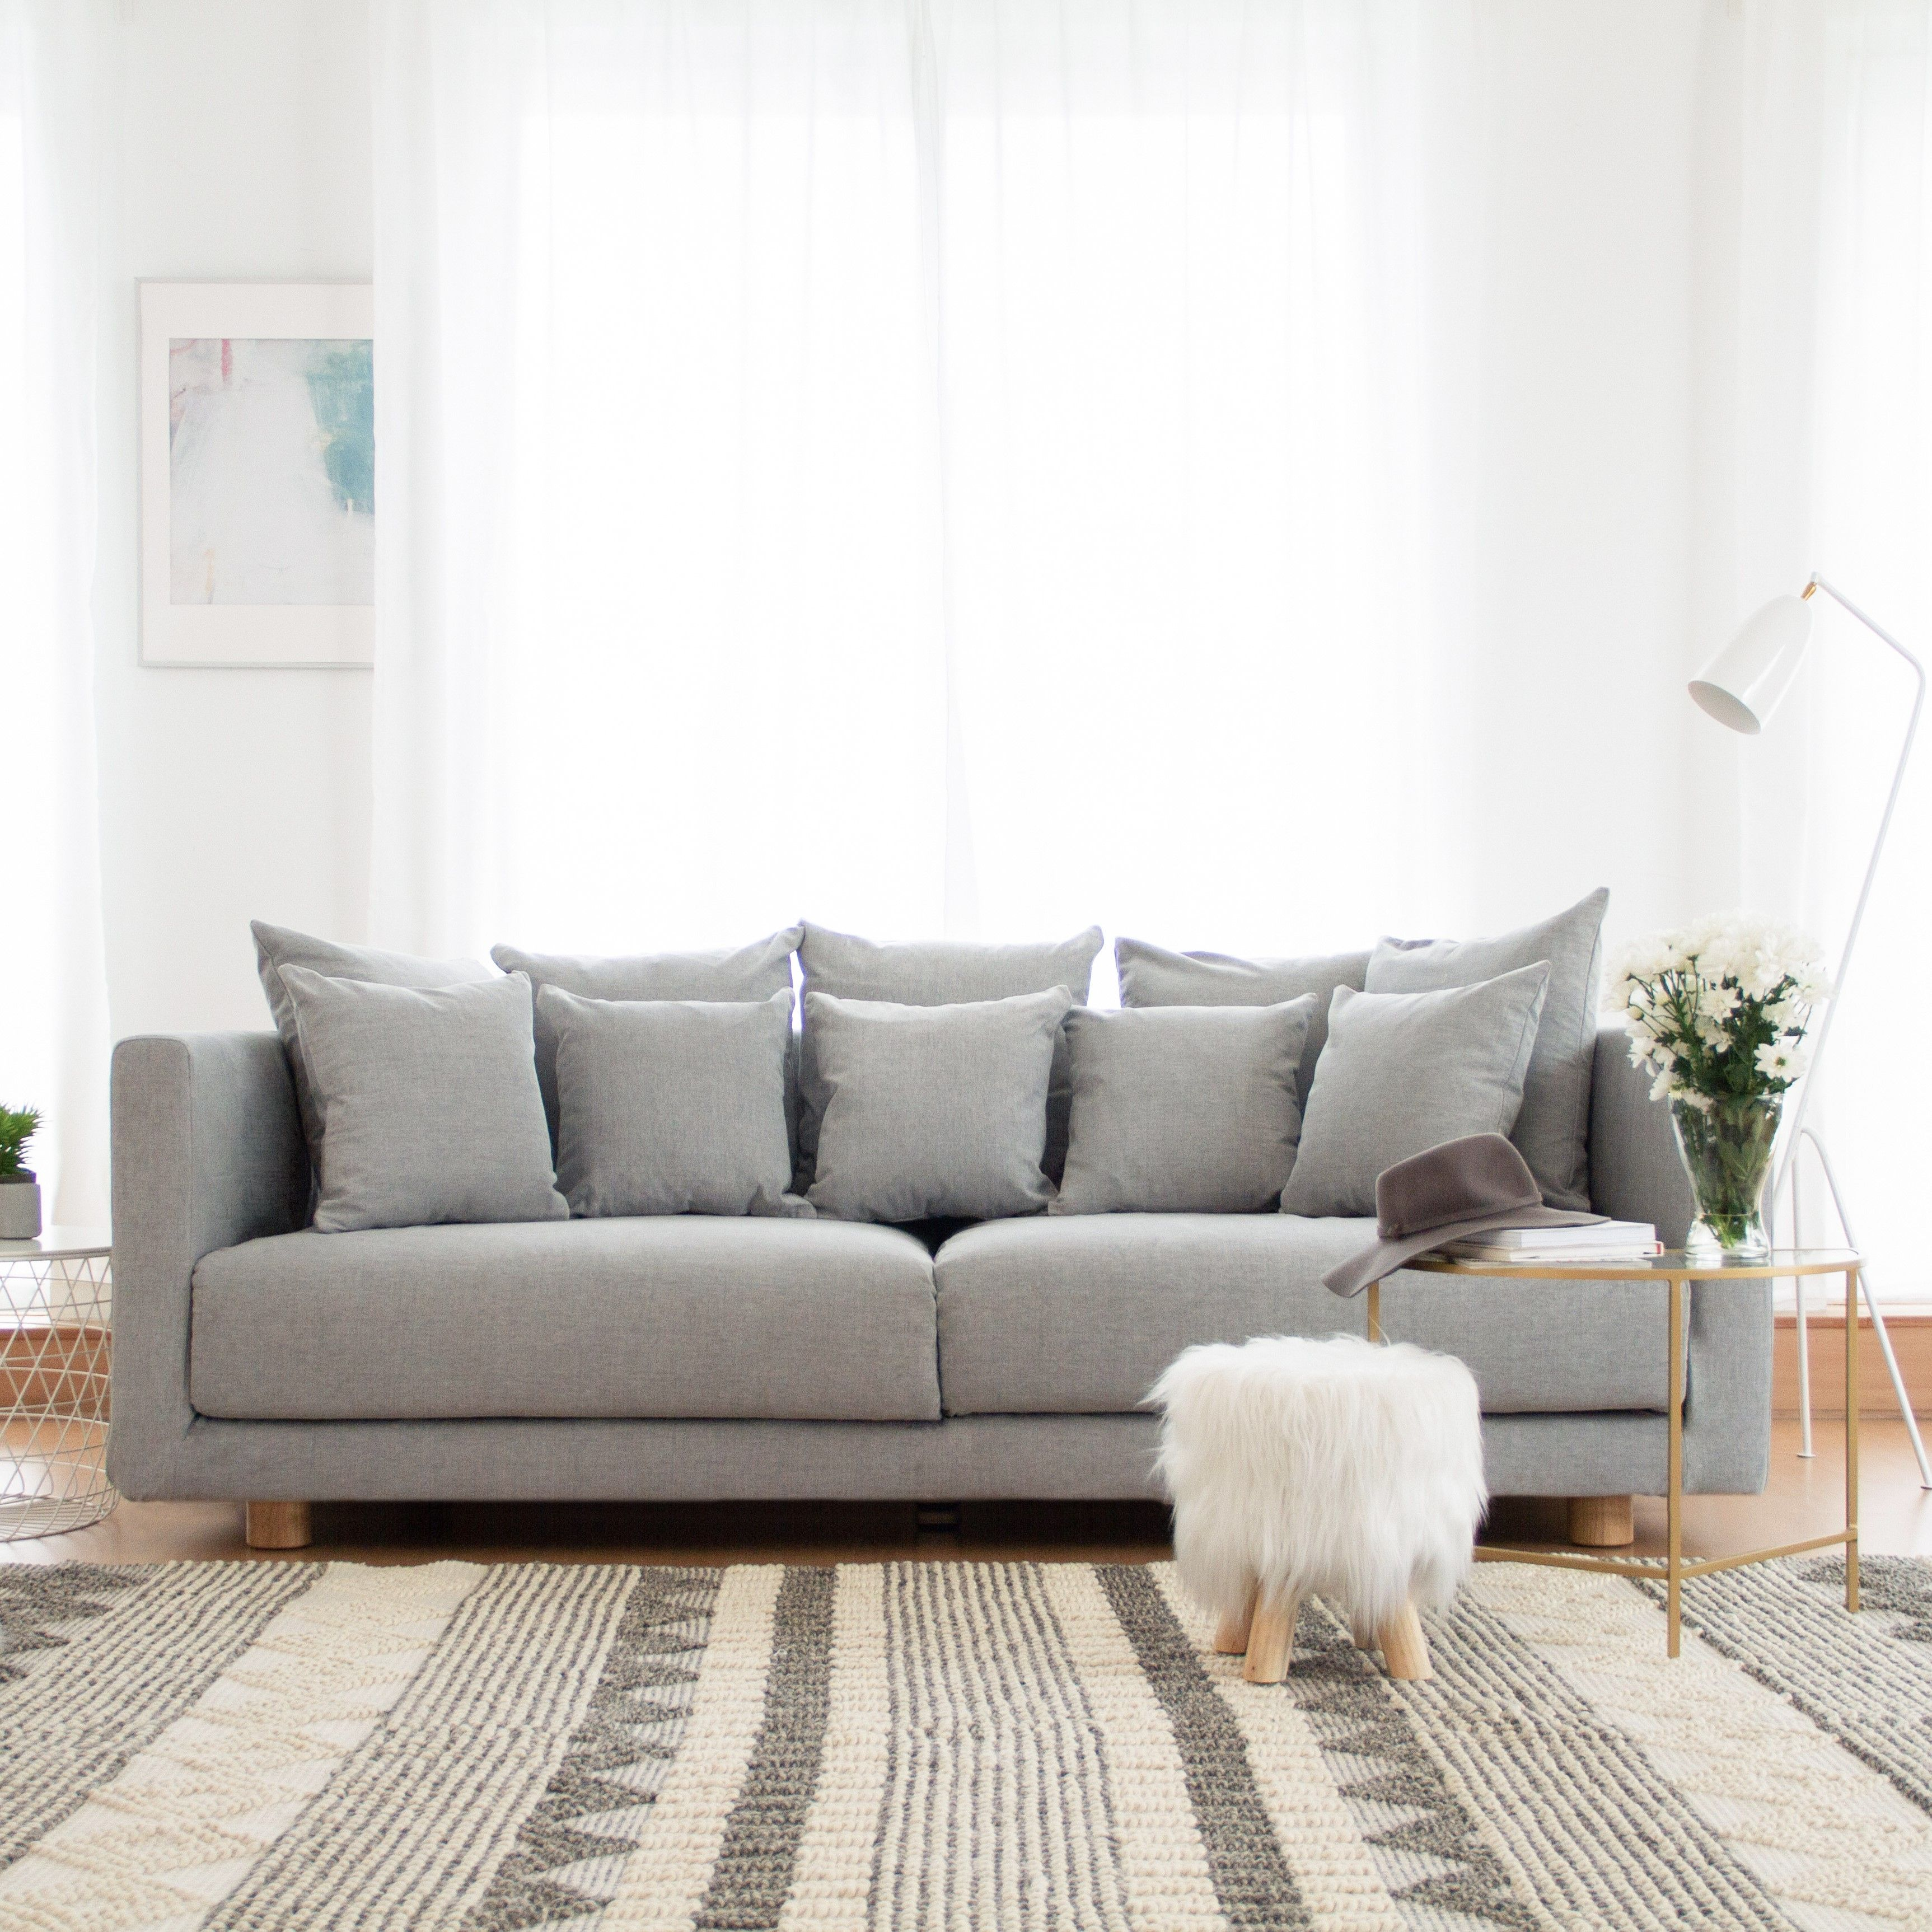 Ikea Stockholm Sofa In Madison Ash Premium Cotton Slipcovers By